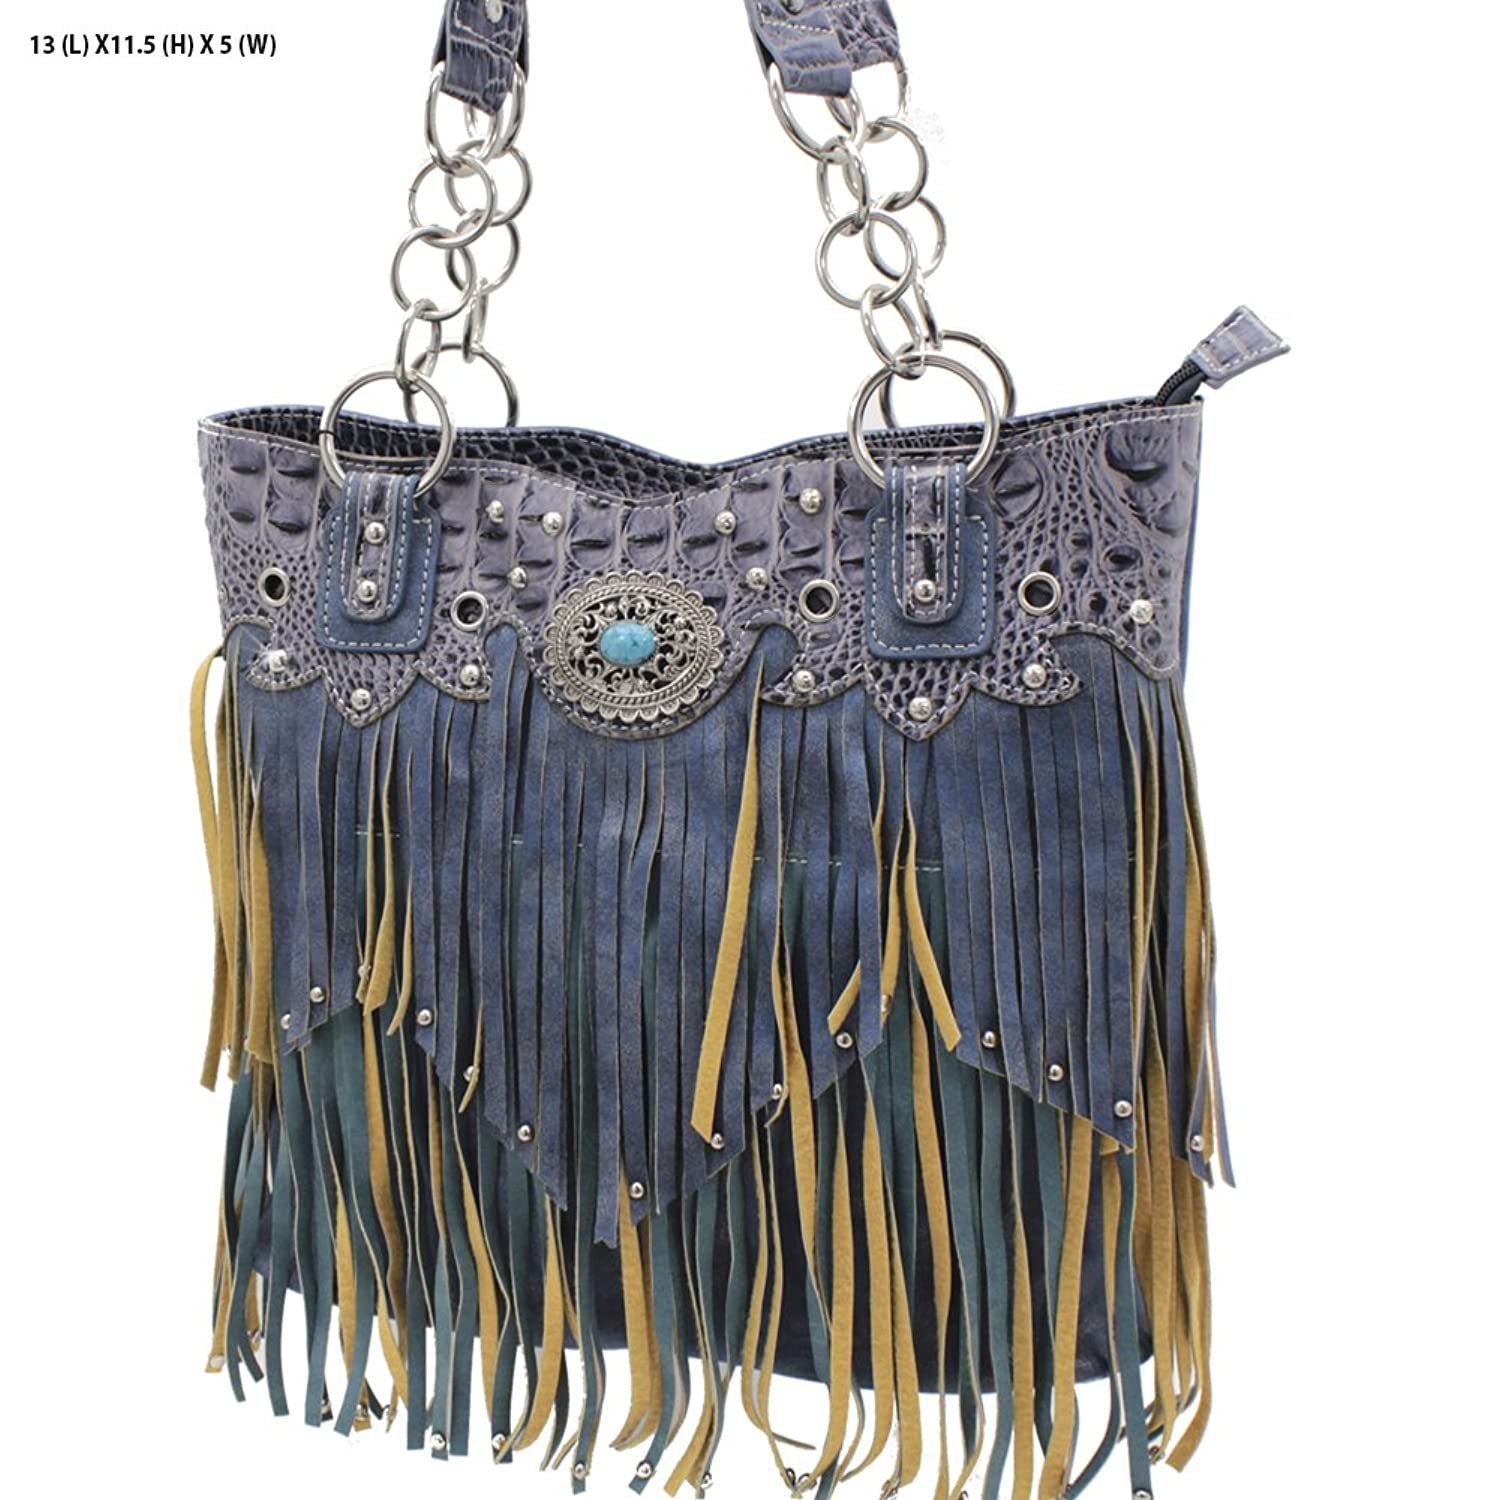 Western Cowgirl Navy and Turquoise Fringe with Turquoise Concho Handbag